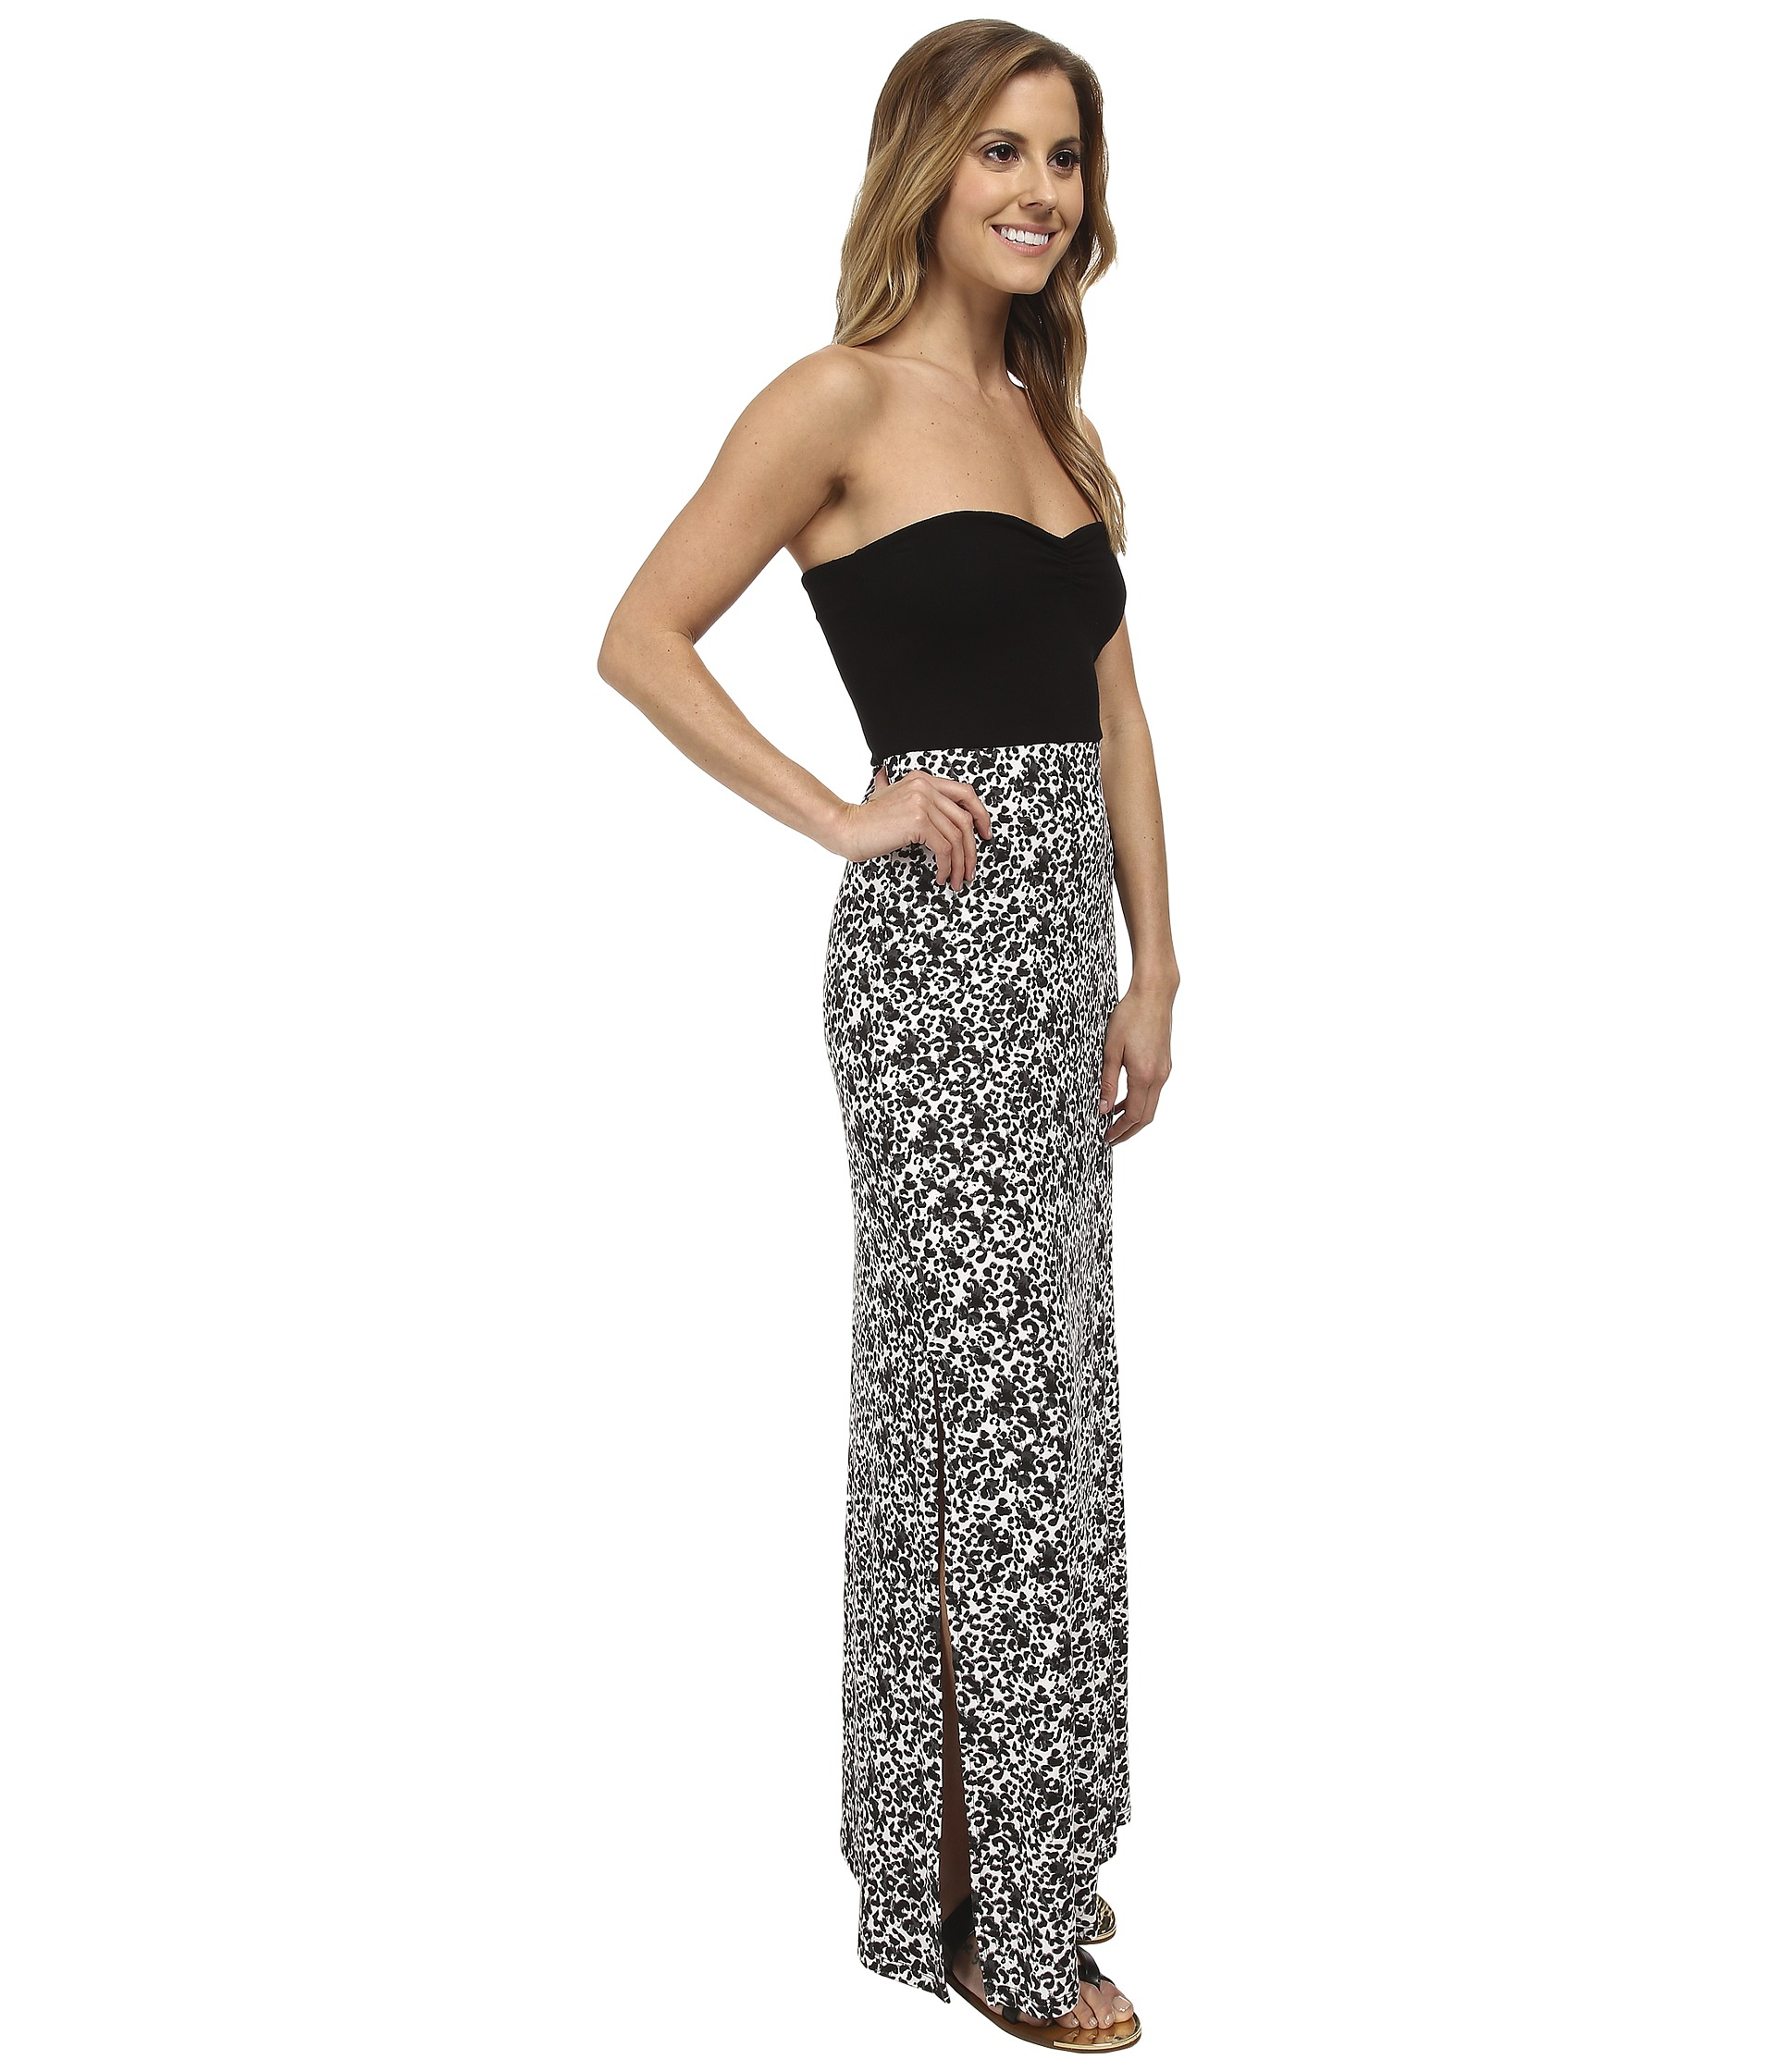 Hurley Tomboy Maxi Strapless Dress in Black - Lyst